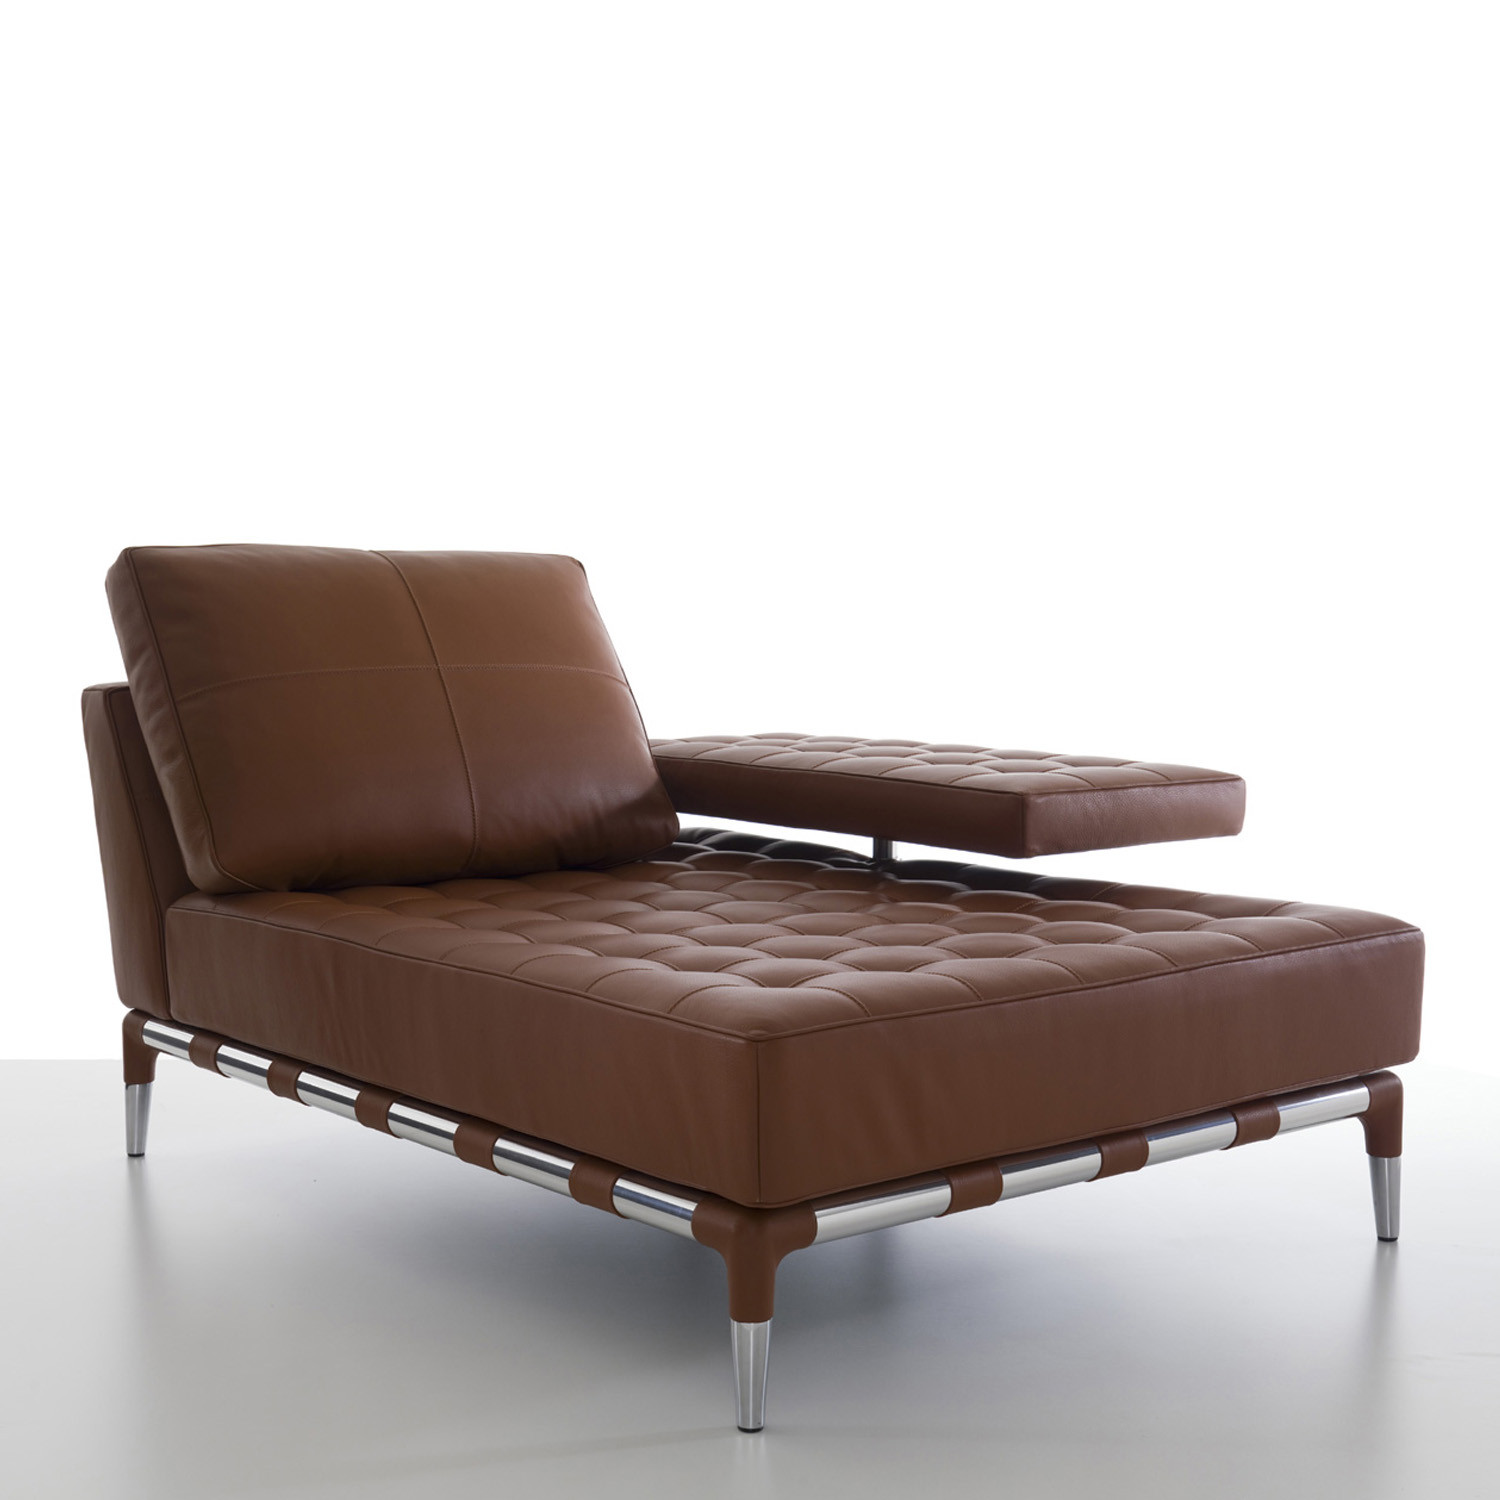 241 Privé Chaise Longue from Cassina